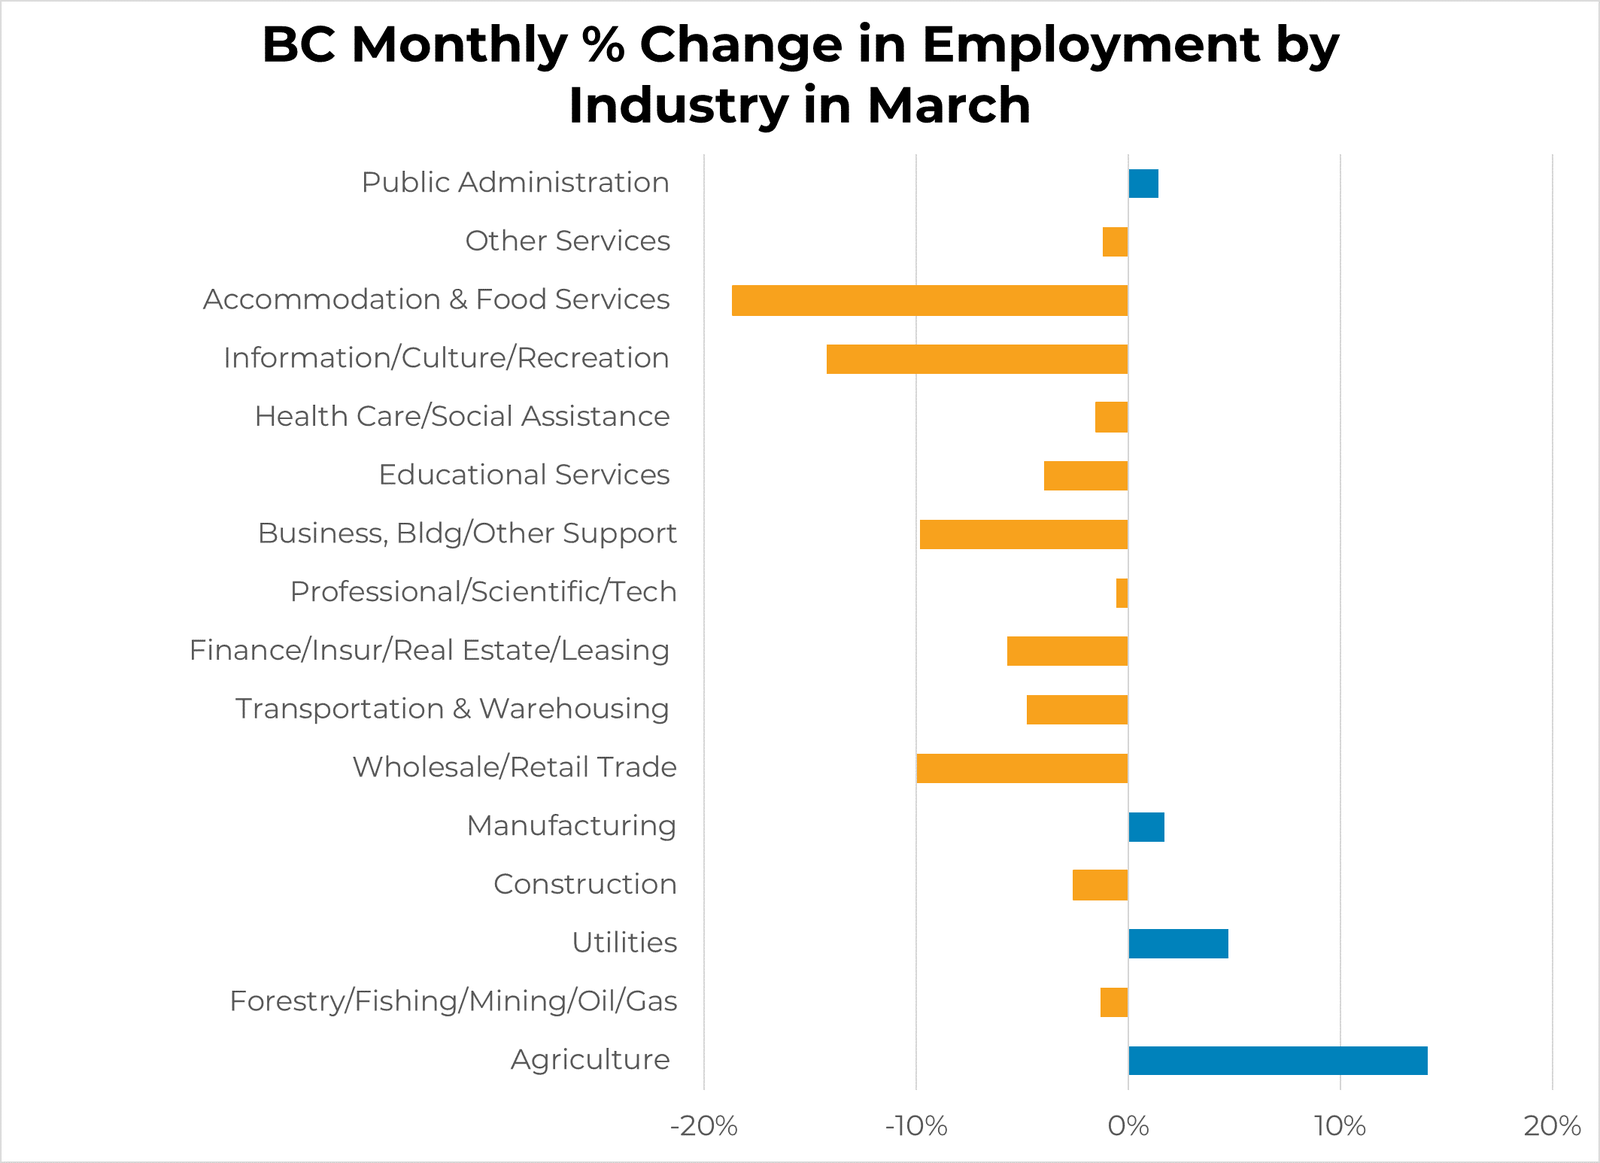 BC Job Rates By Industry